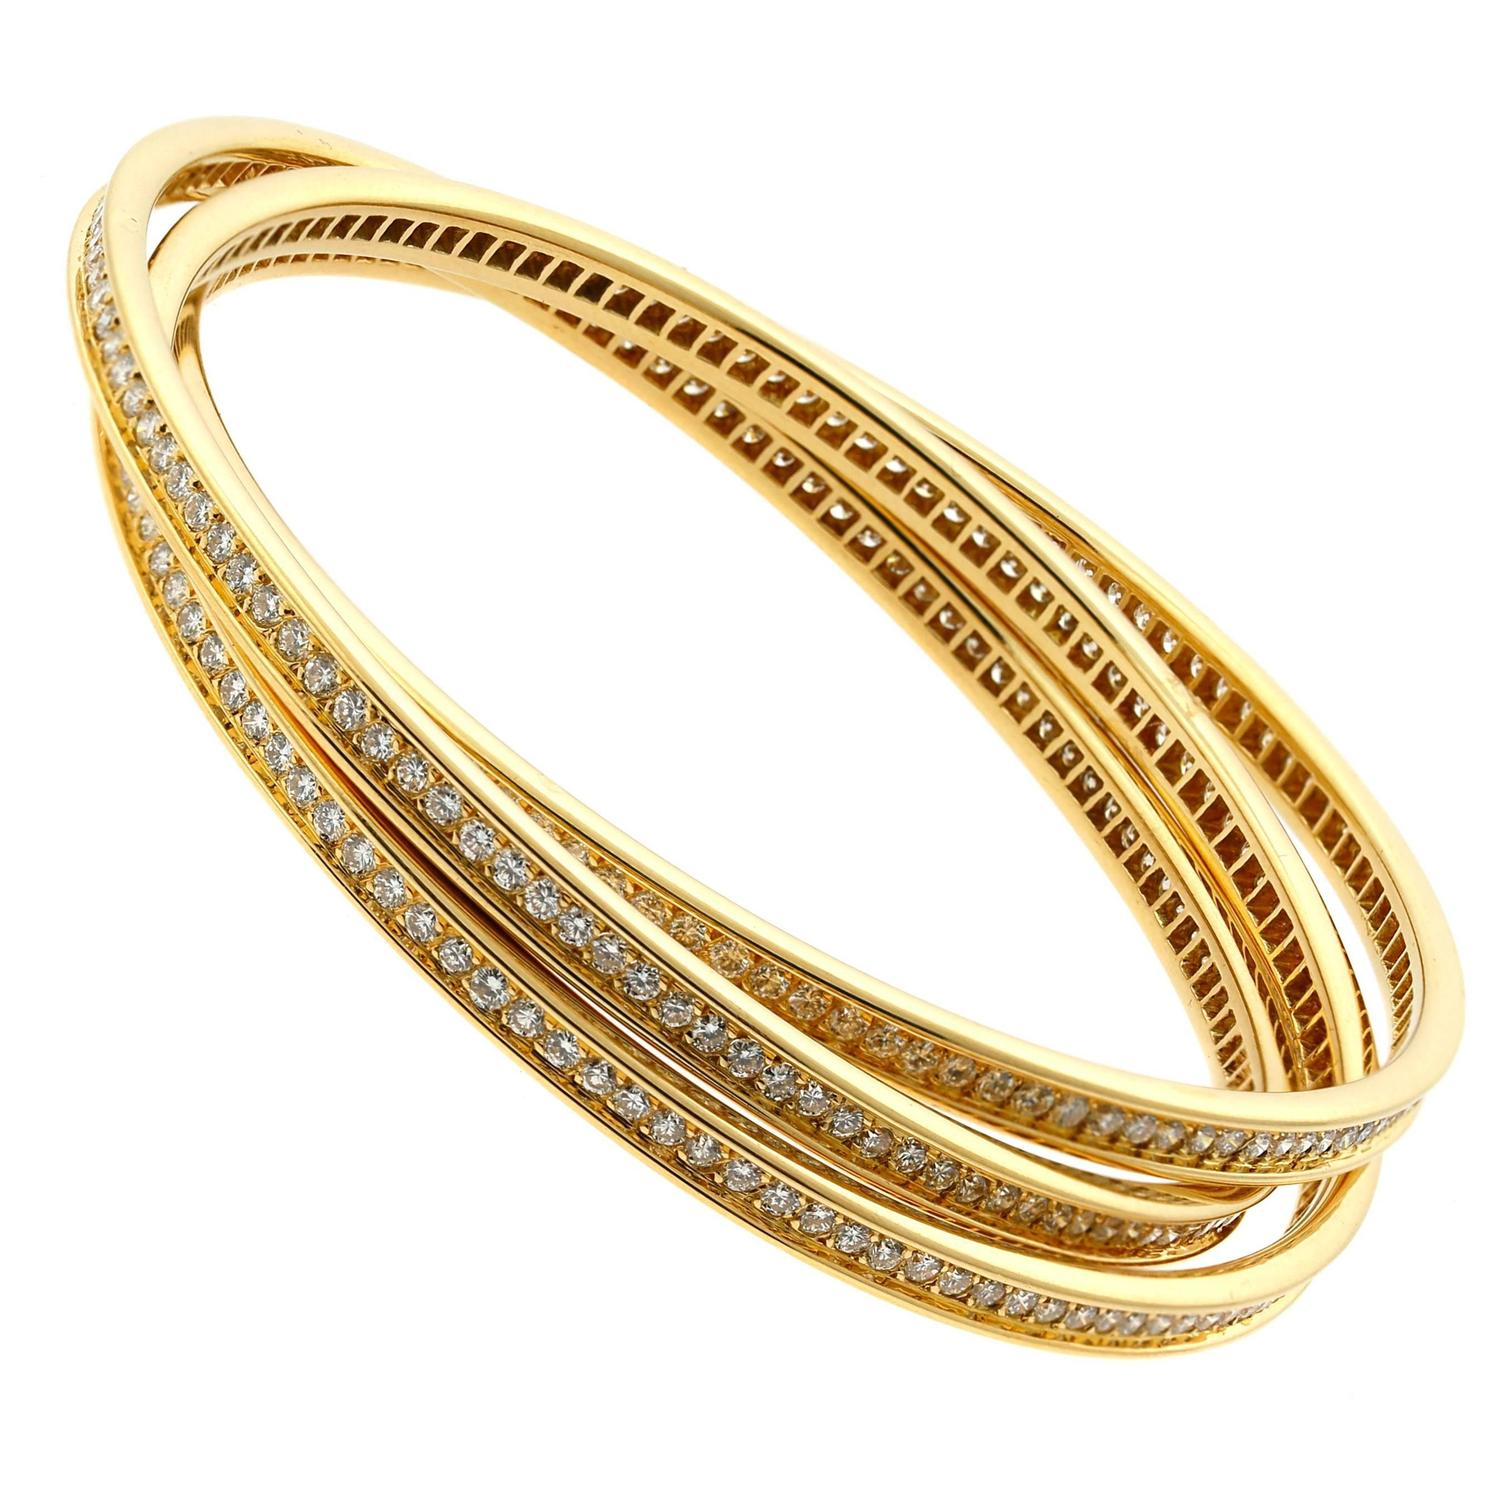 gold today and bracelet jewelry silver watches free overstock gurhan product bracelets women sterling bangles for shipping lancelot bangle